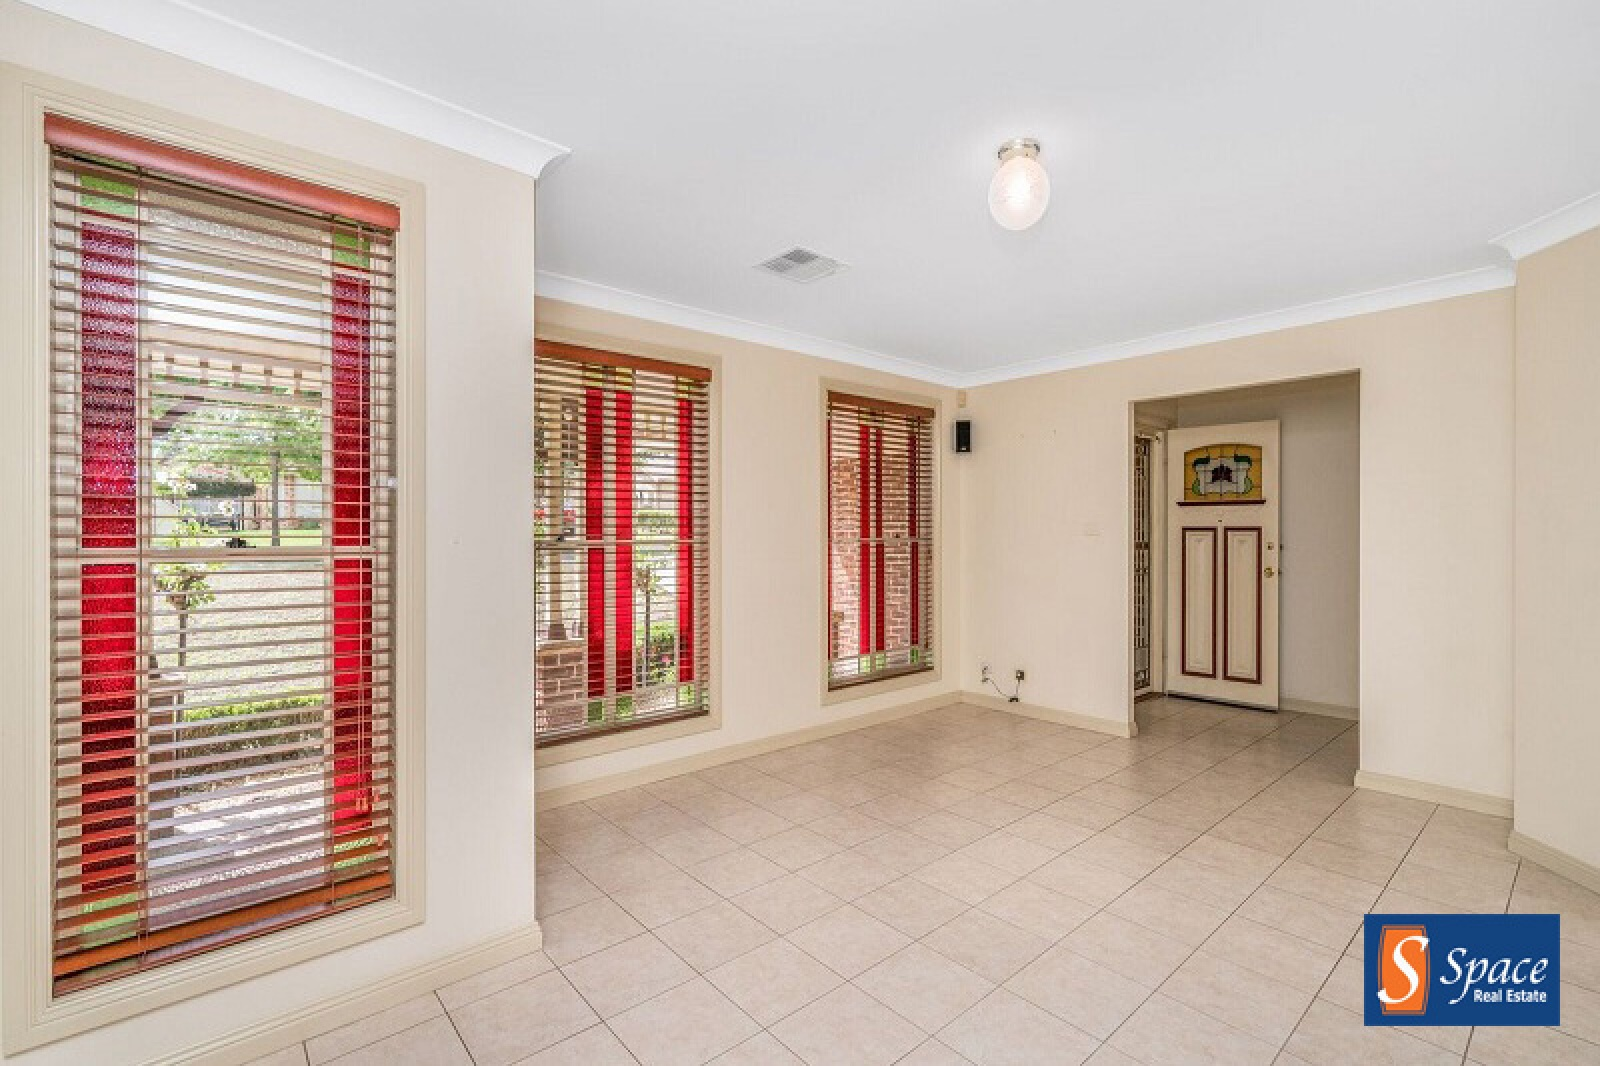 34 William Campbell Avenue,Harrington Park,NSW,4 Bedrooms Bedrooms,2 BathroomsBathrooms,House,William Campbell Avenue,1348